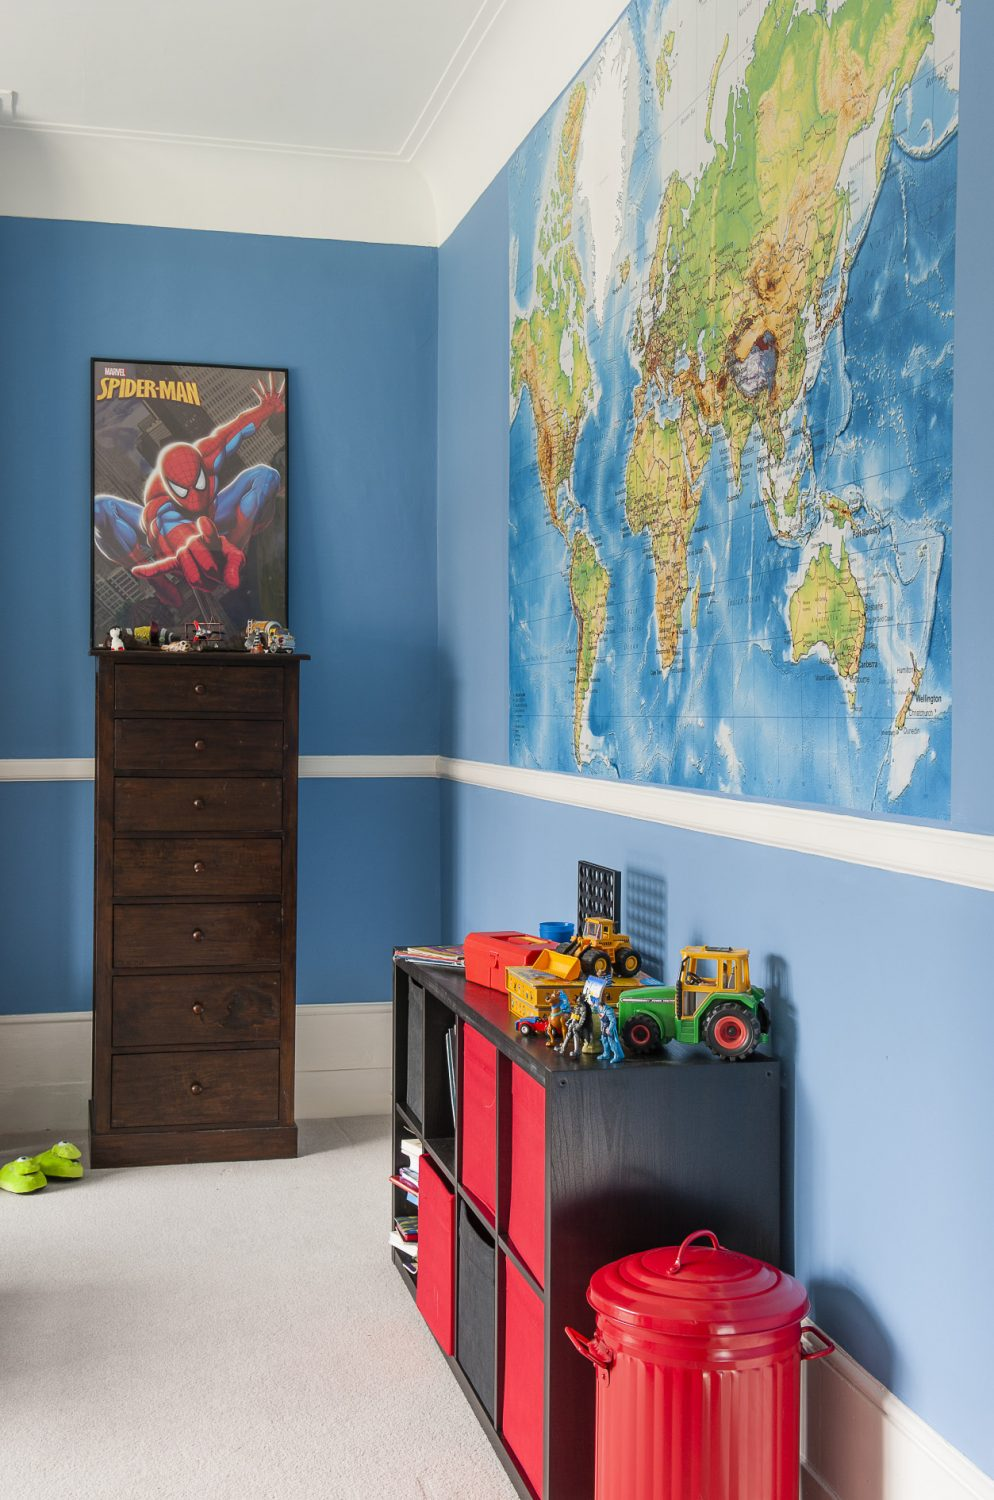 Son James' very blue room features a giant map of the world papered onto one wall